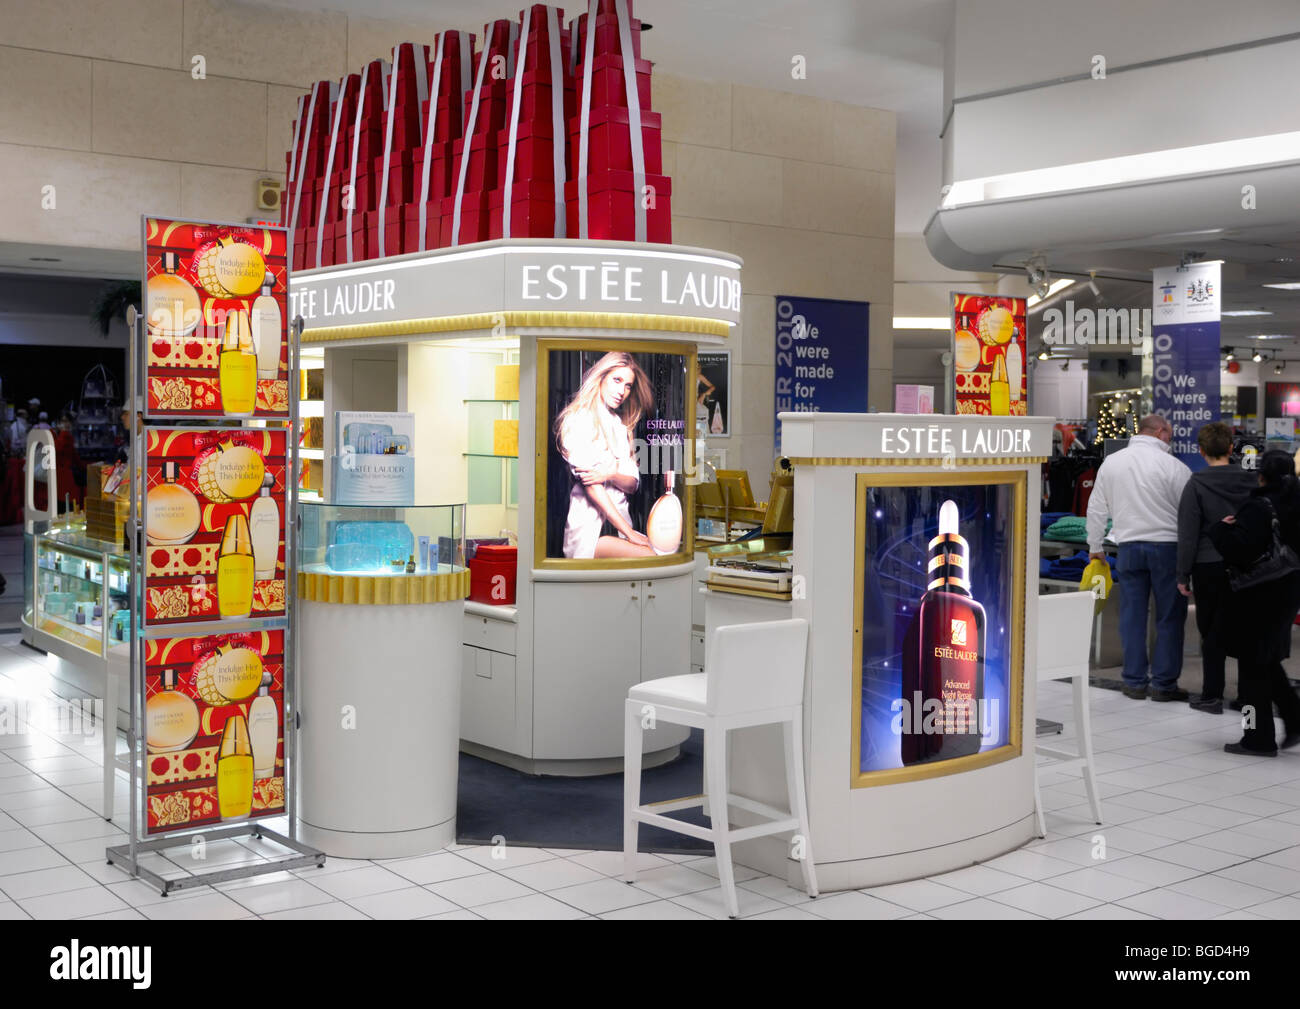 Stock Photo - Estee Lauder cosmetics and makeup display in a shopping mall in Toronto, Canada